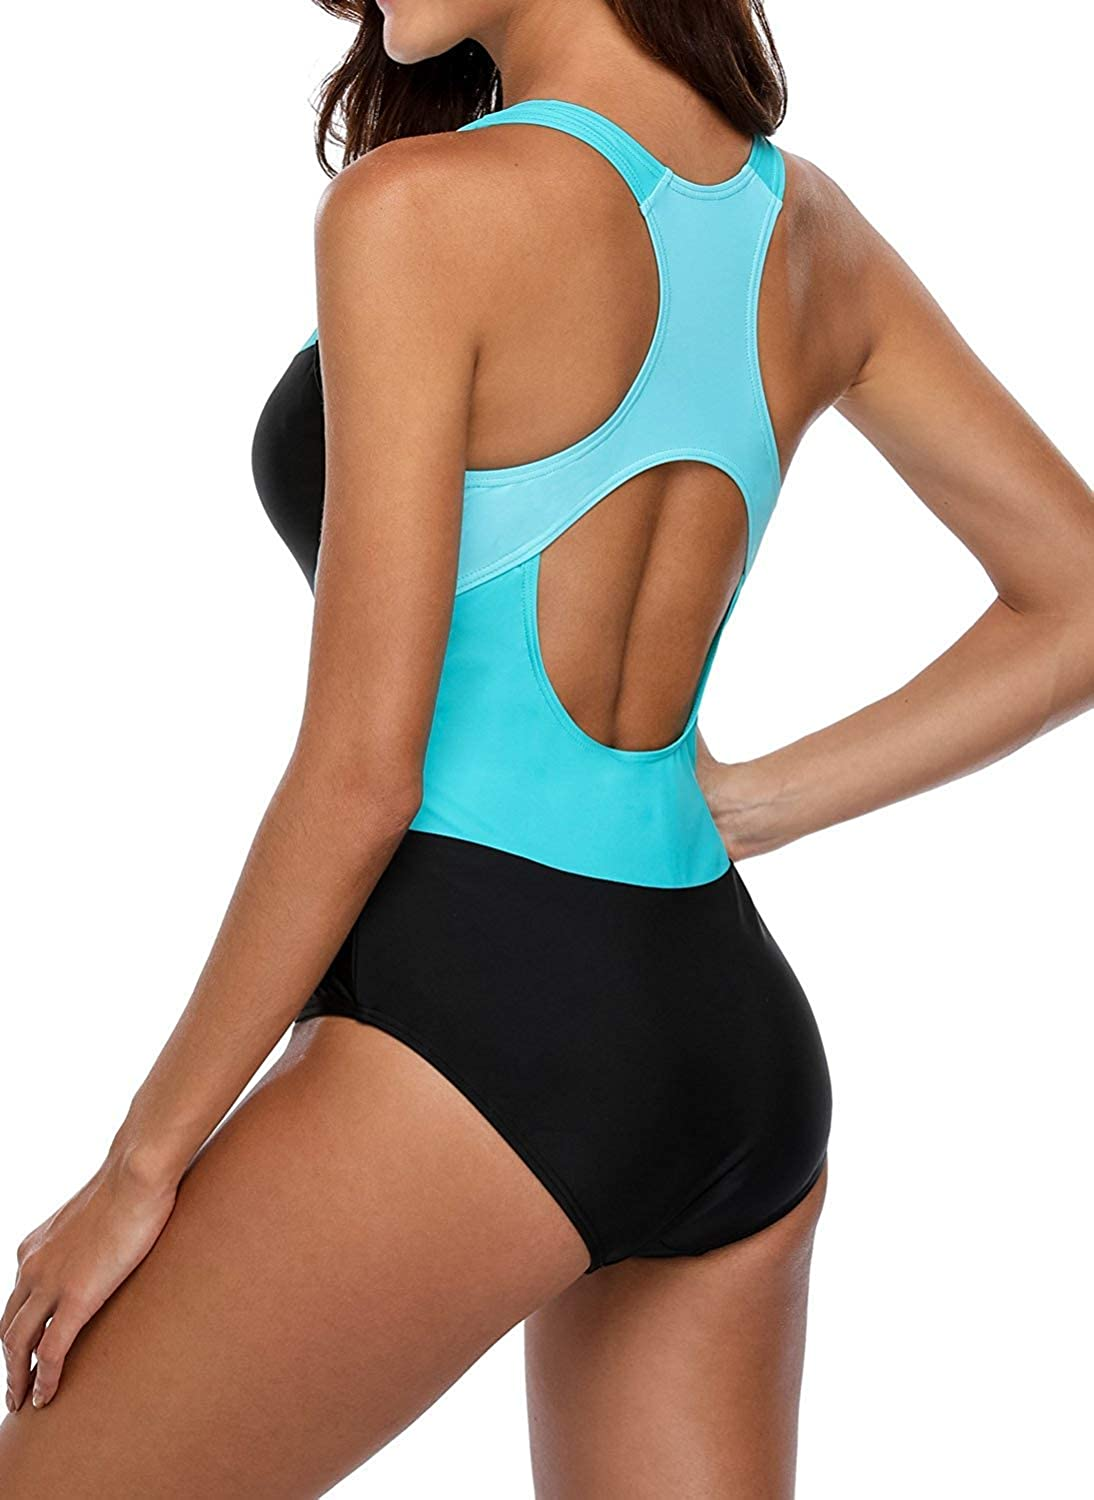 sands coast Womens One Piece Swimsuits Sports Racerback Bathing Suit Racing Training Athletic Swimwear for Teens